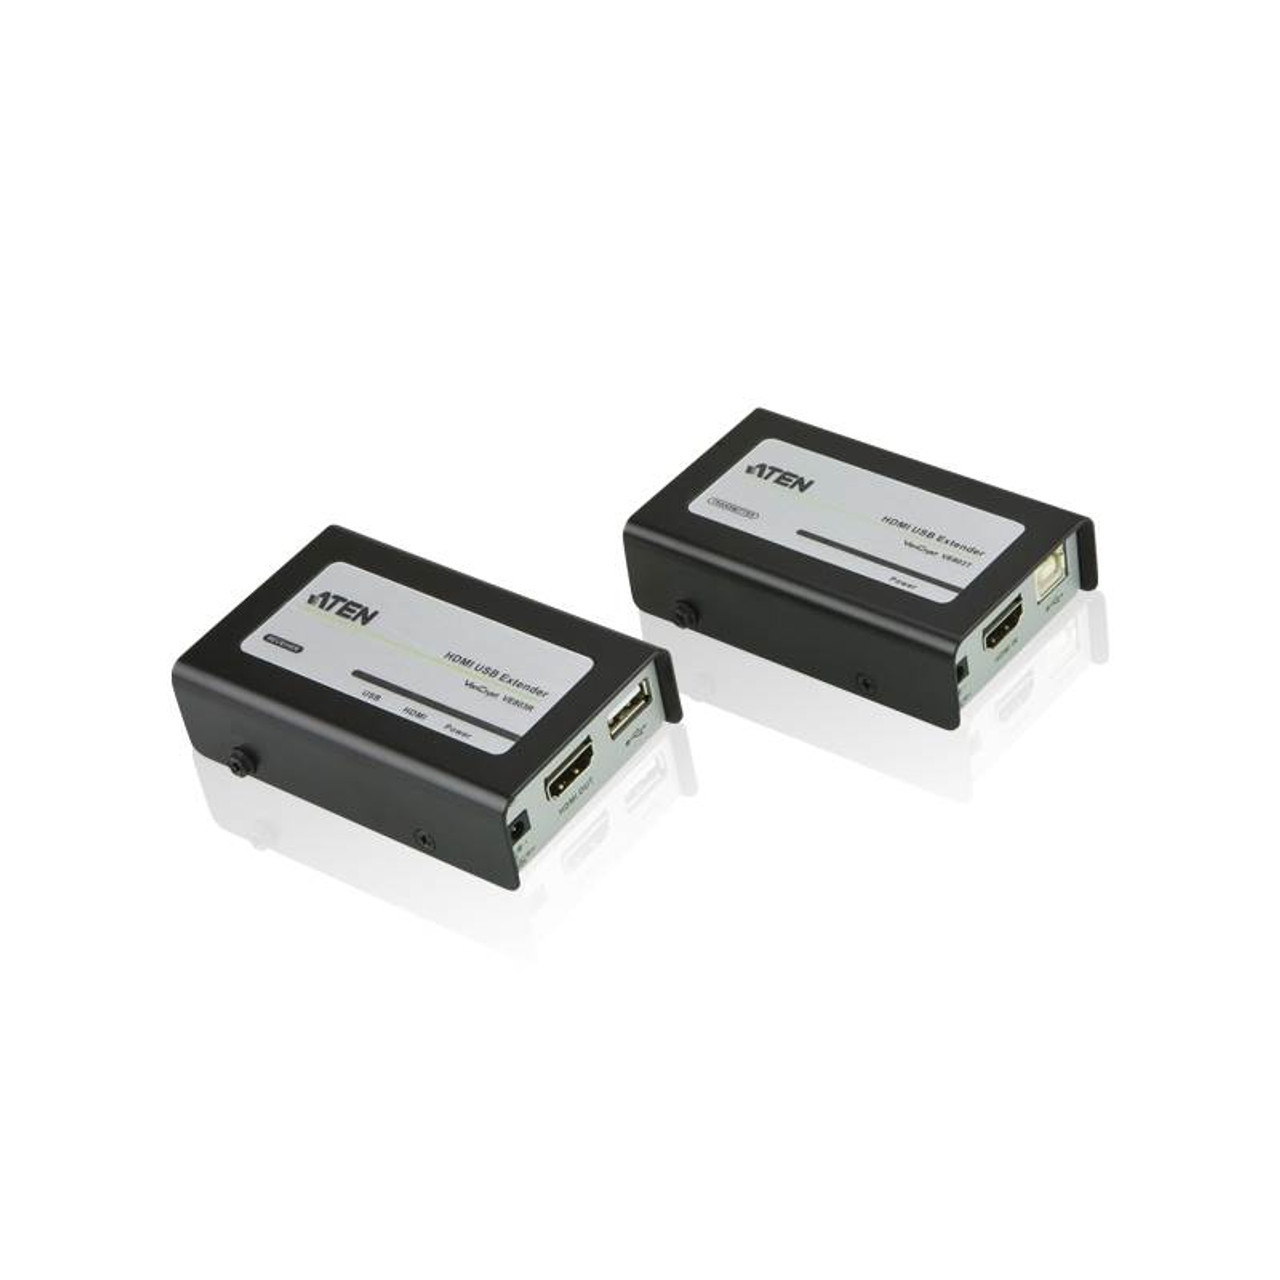 Image for ATEN VanCryst VE803 HDMI/USB over Cat5 Extender - 1080p at 40m CX Computer Superstore